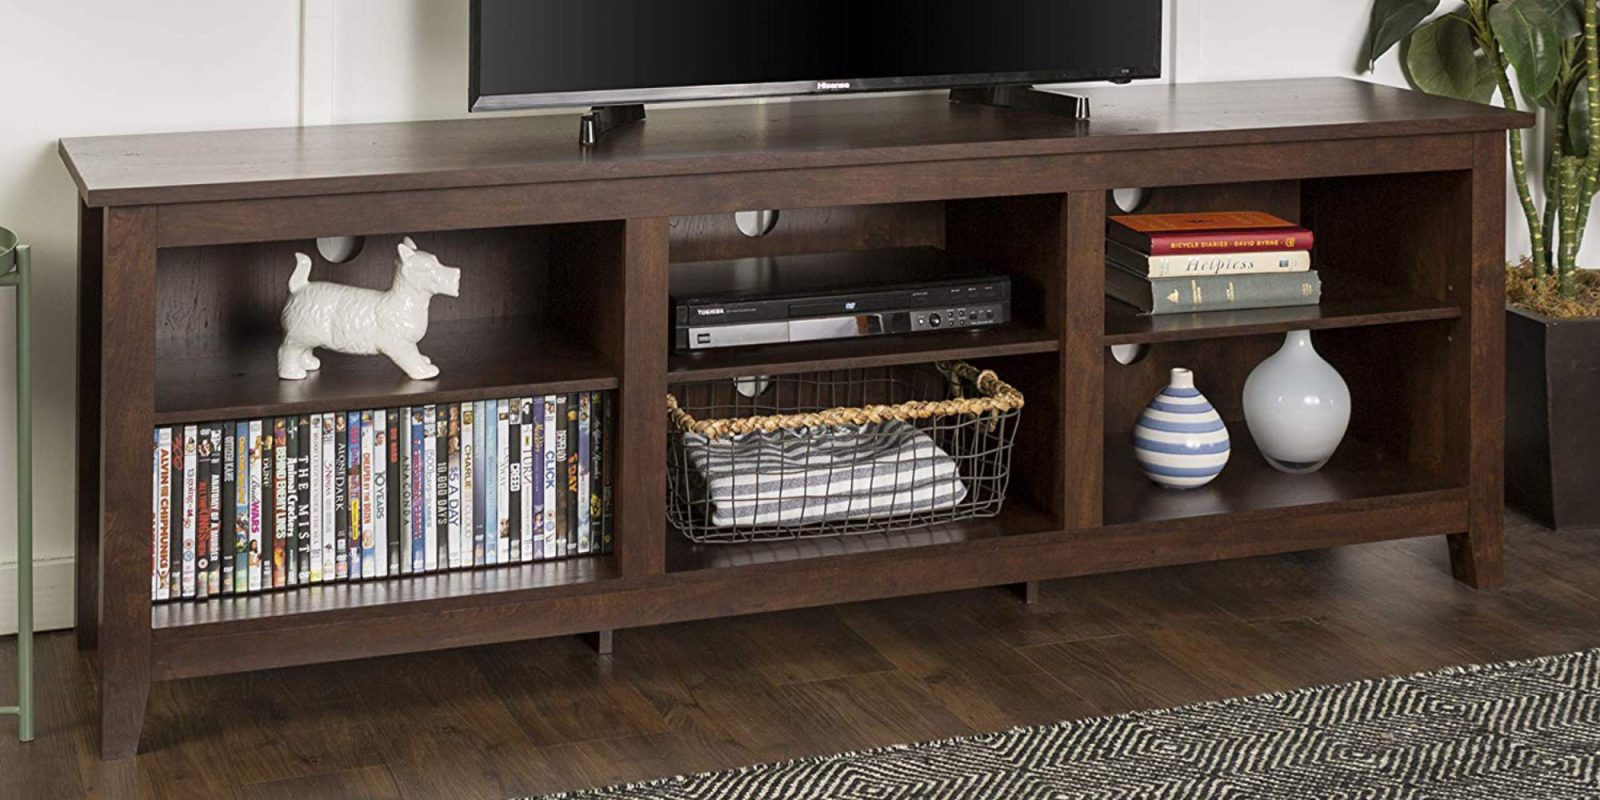 Your 78-inch Black Friday TV needs space, this minimal stand is ready at $152